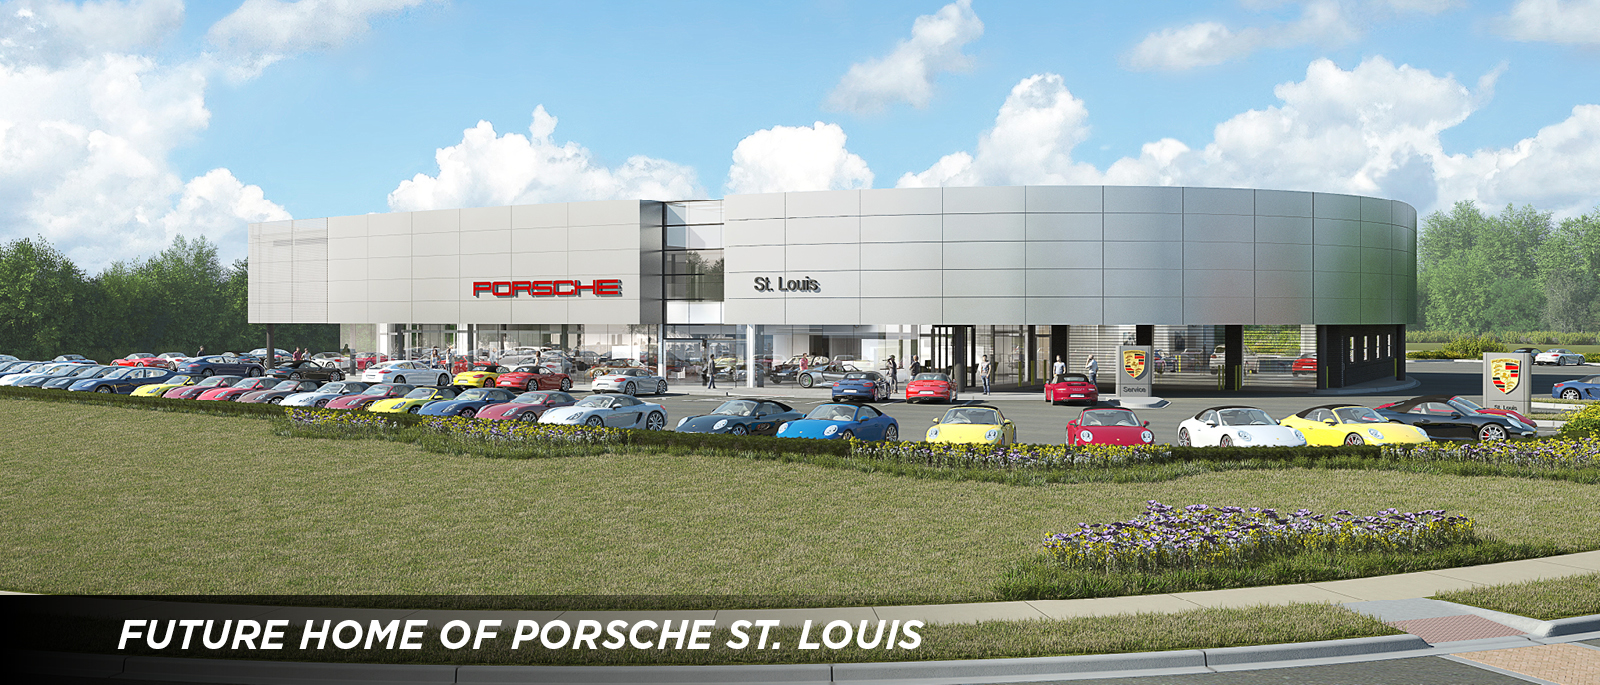 porsche st. louis - august update on new porsche st. louis site